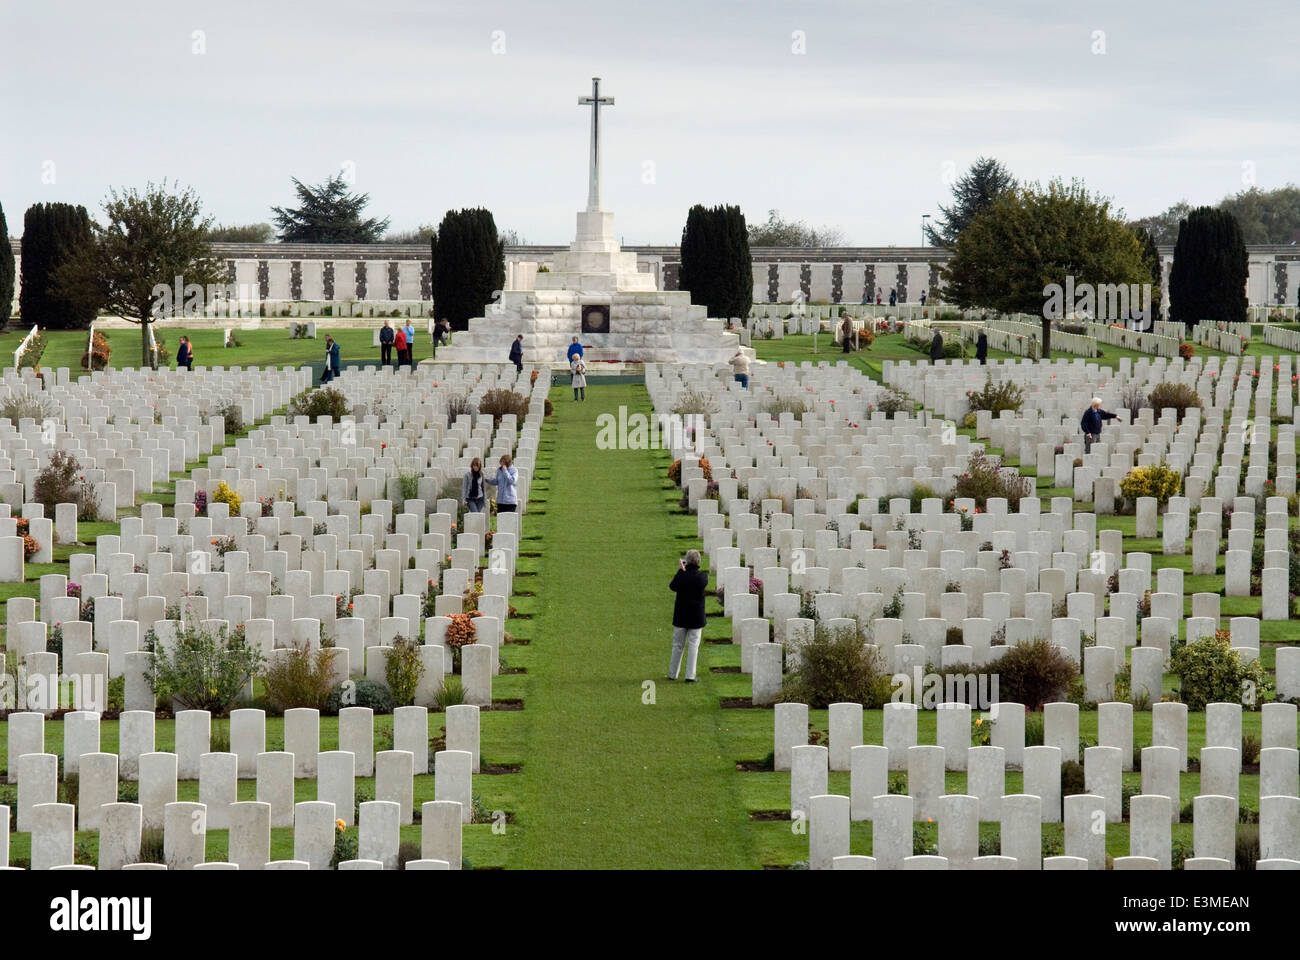 tyne-cot-wwi-cemetery-3587-burials-and-m